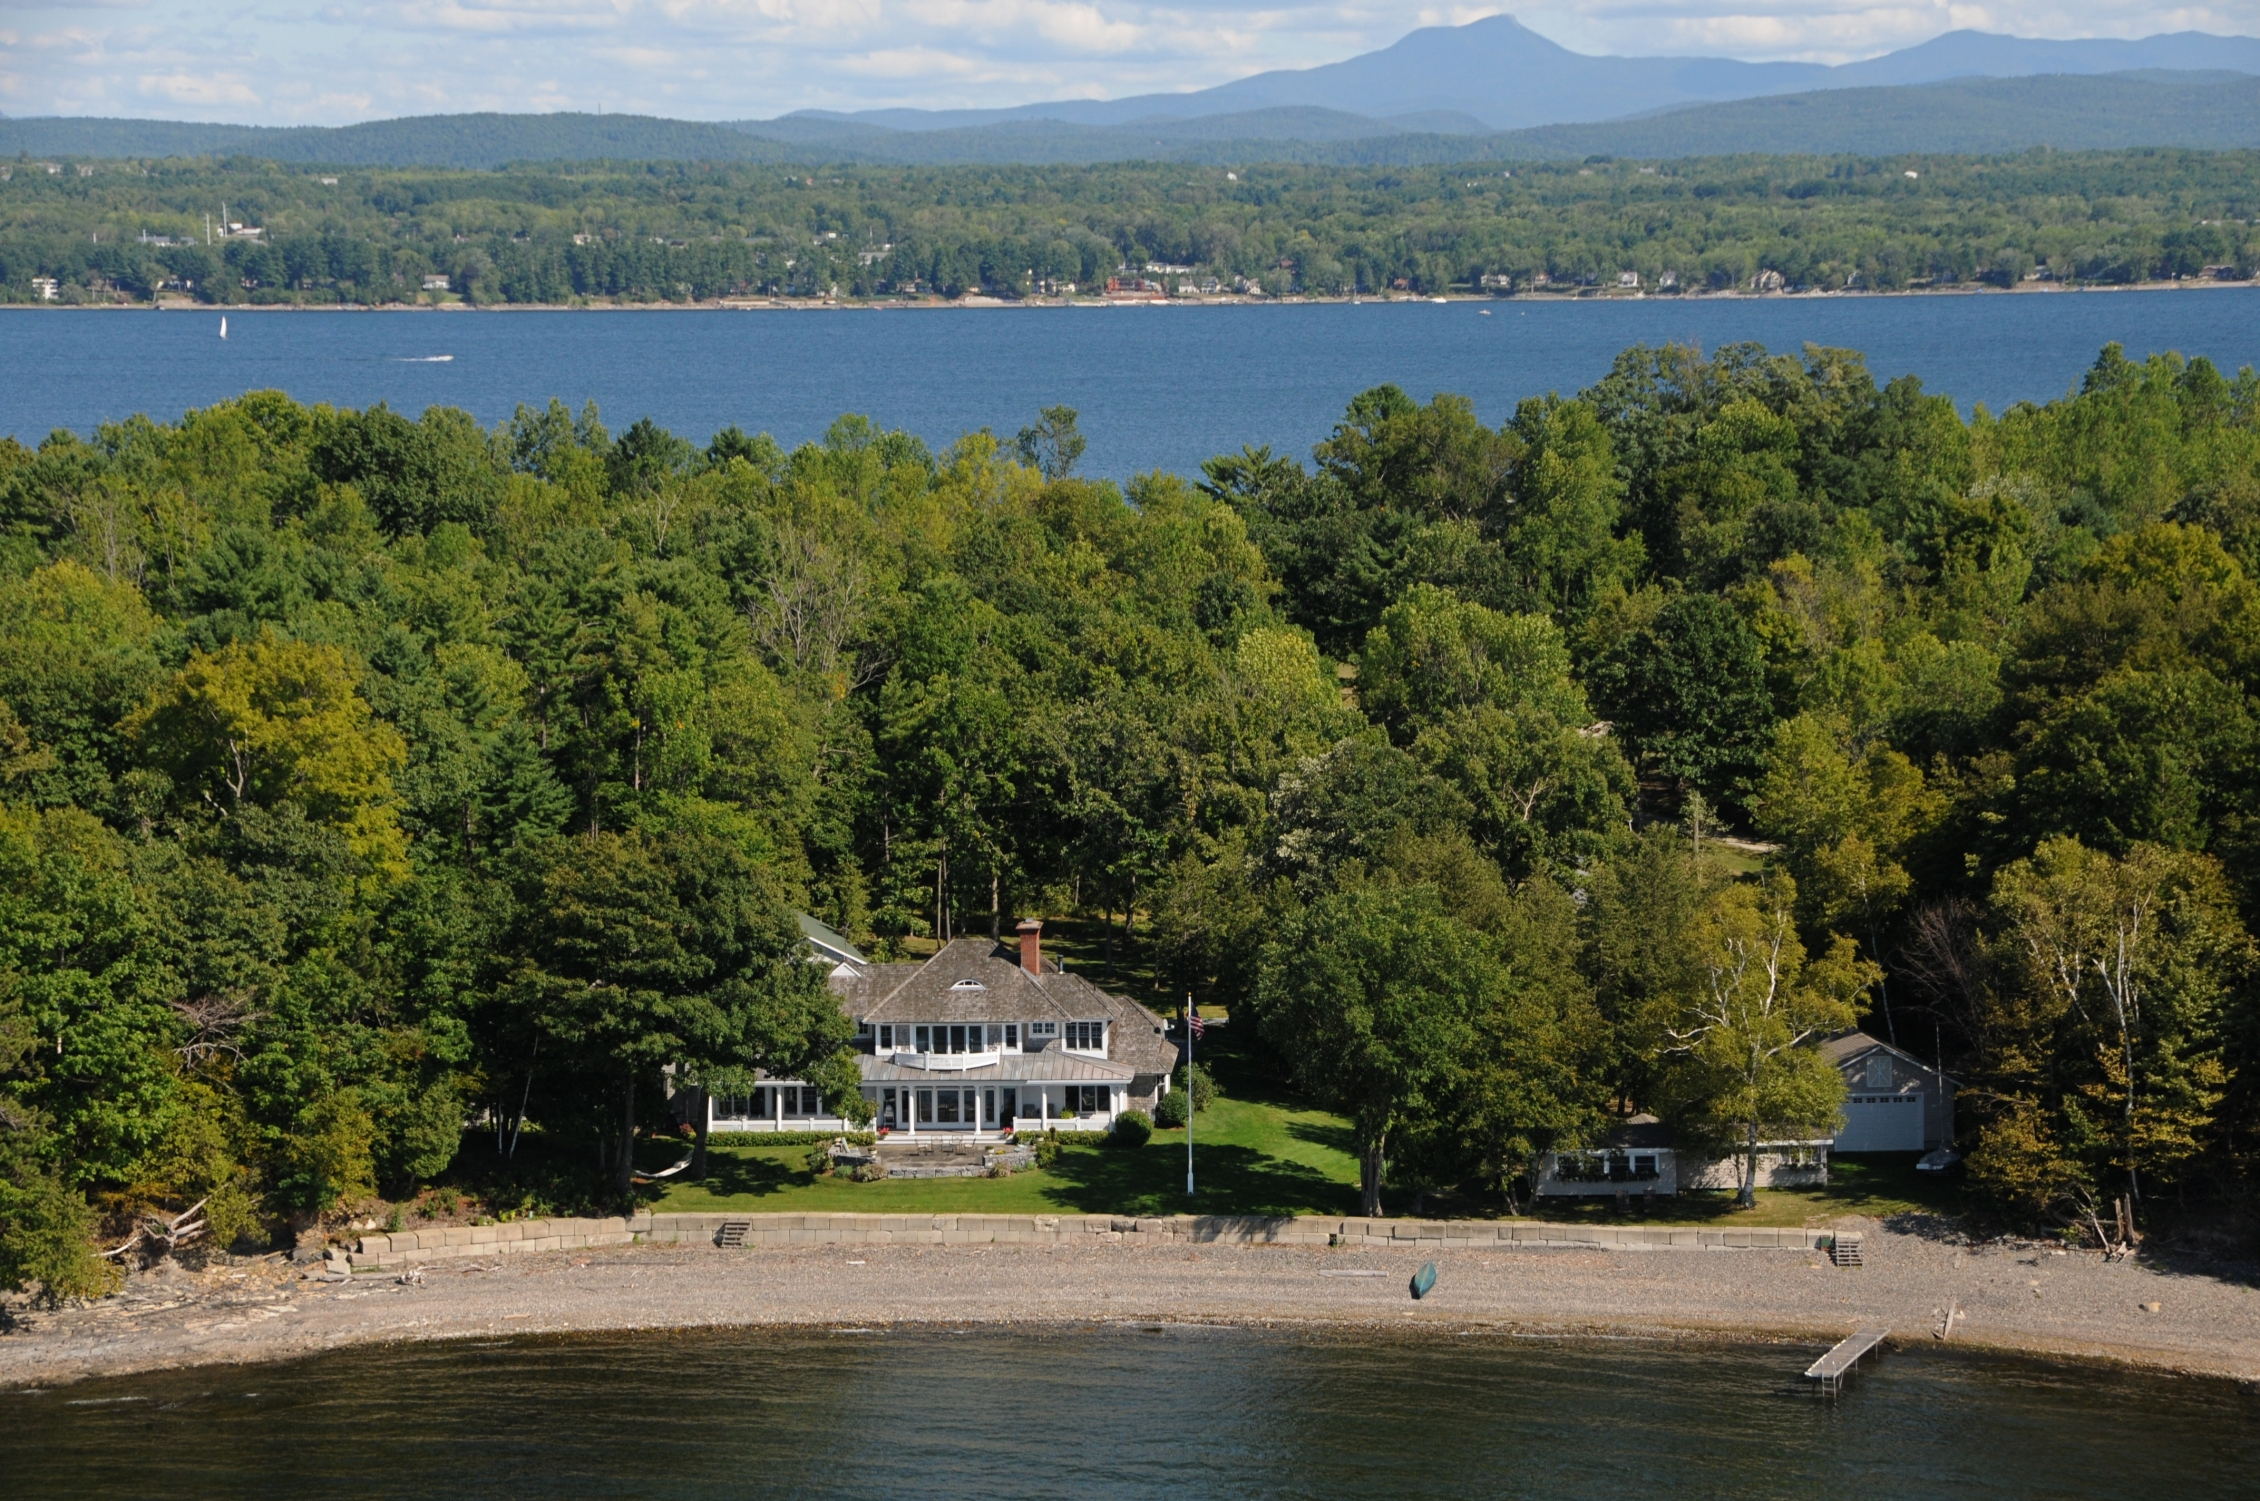 Single Family Home for Sale at Indian Cove on Lake Champlain Vermont 3689 Harbor Rd Shelburne, Vermont, 05482 United States